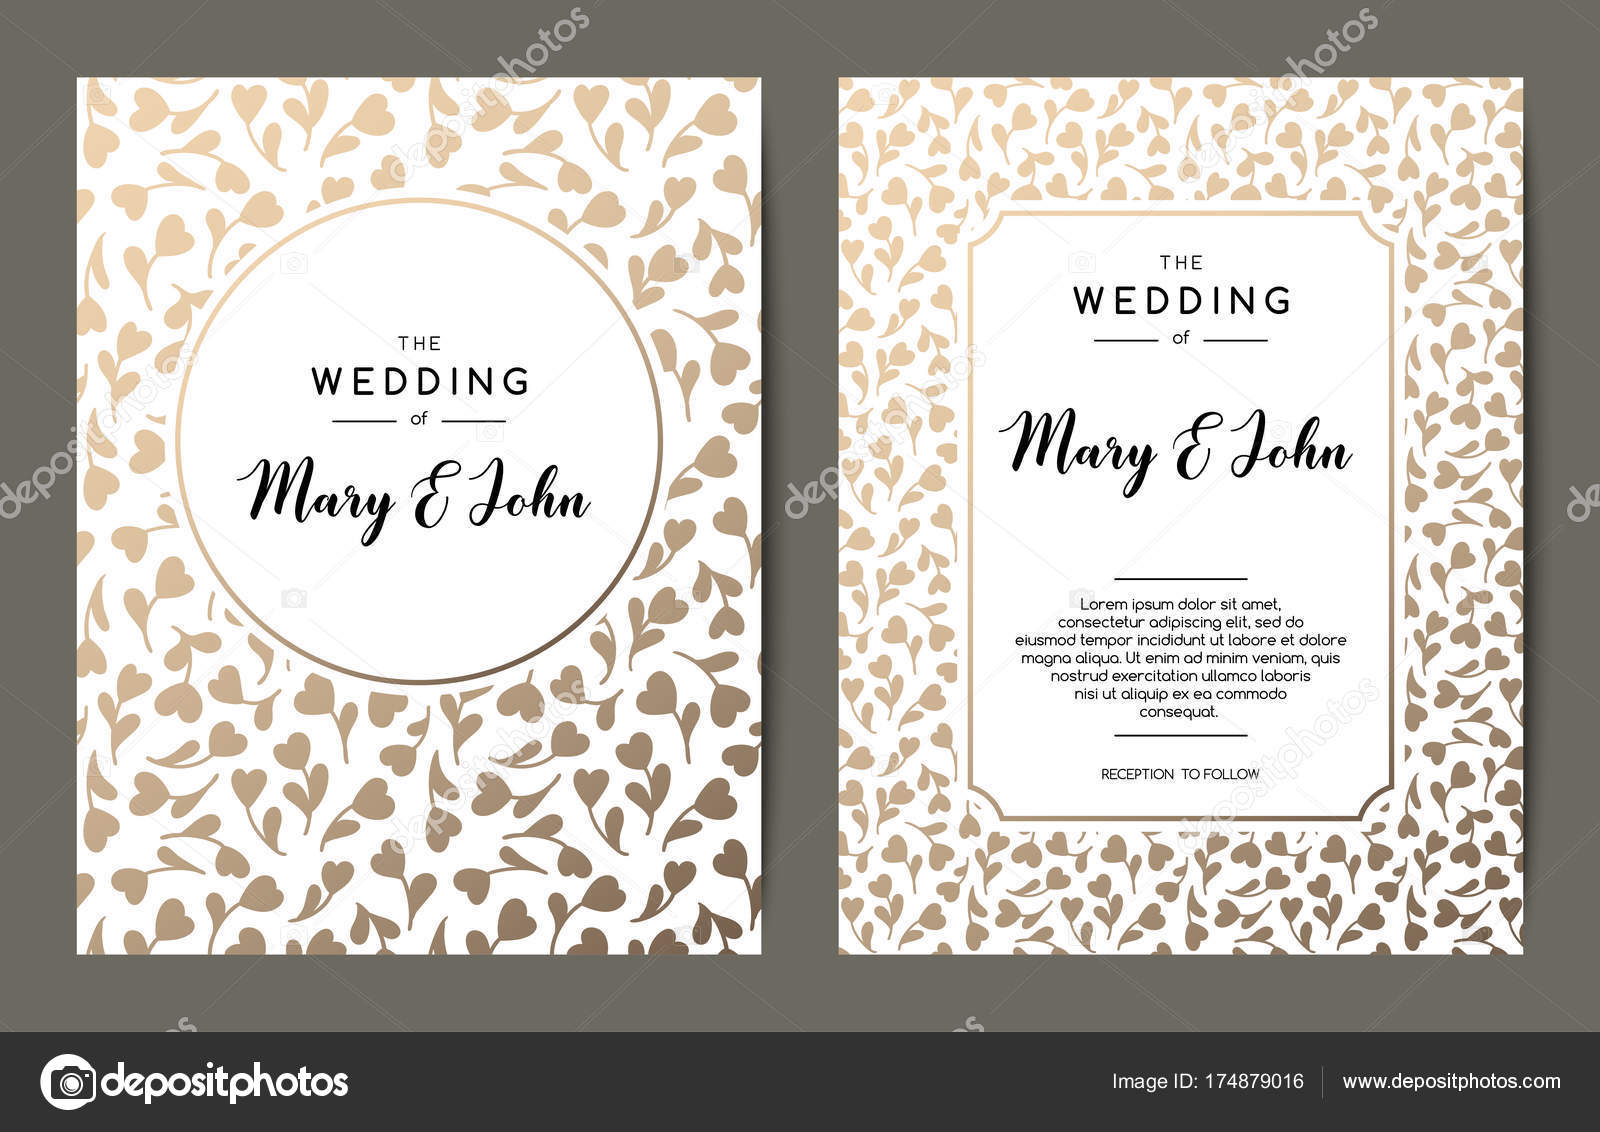 Elegant wedding invitation backgrounds card design with gold floral elegant wedding invitation backgrounds card design with gold floral ornament vector decorative templates vector by pravdinal stopboris Gallery